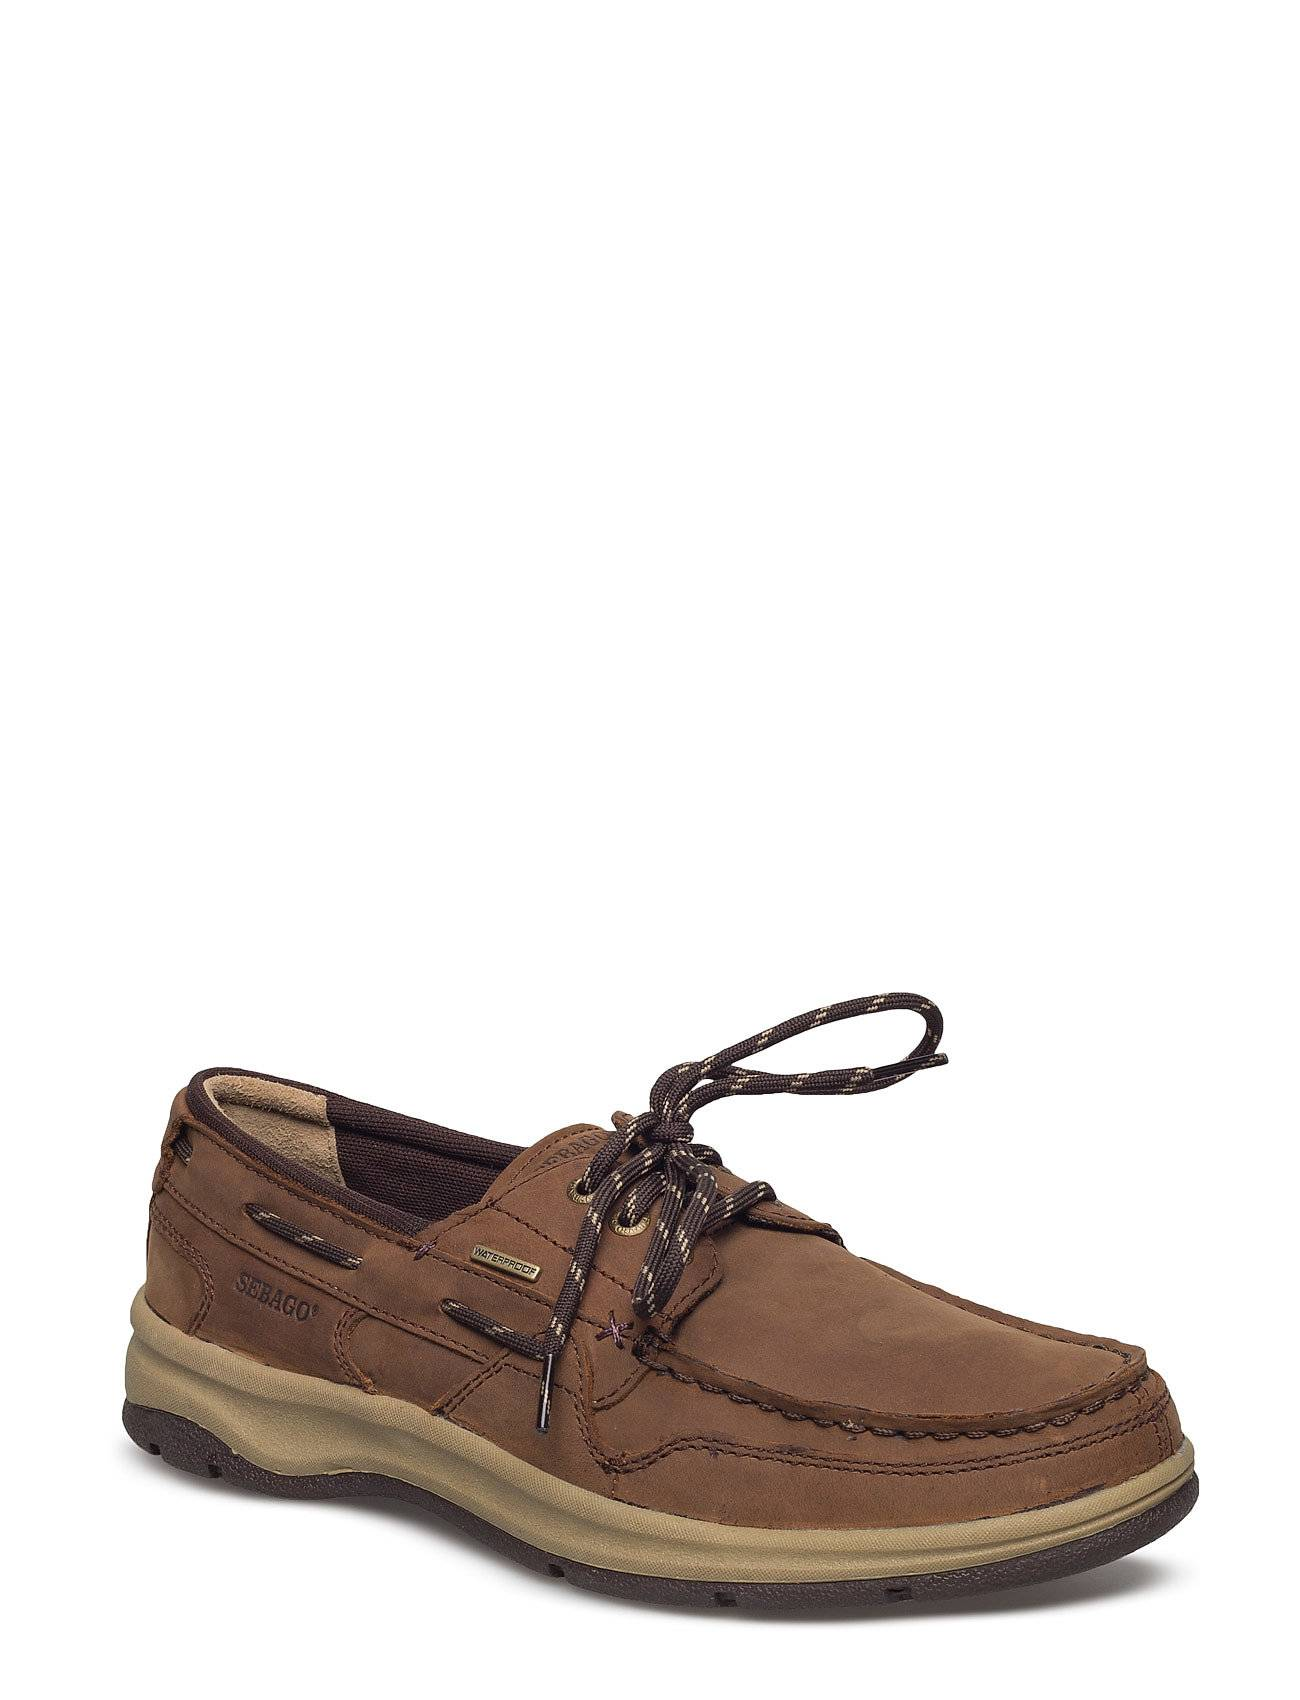 Sebago Brice Three Eye Wp